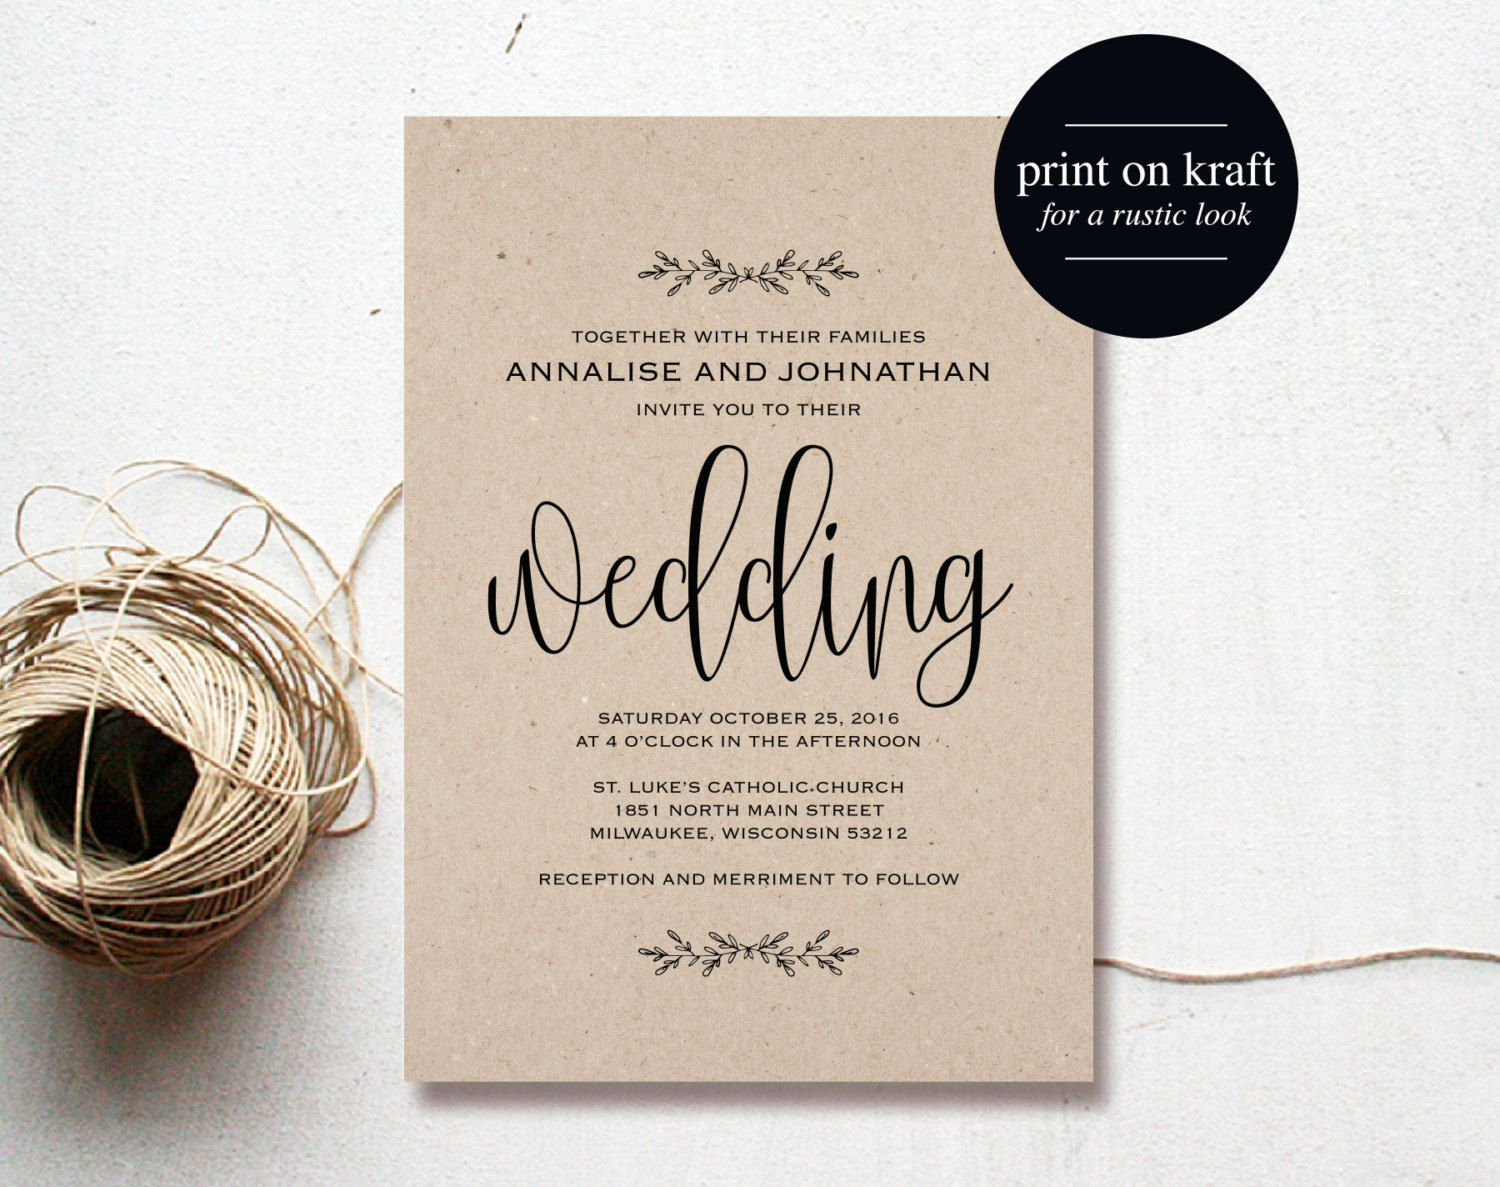 Kraft wedding invitation printable rustic invitation set invite purchase this listing to receive 5 high resolution wedding invitation template downloads for you to edit stopboris Choice Image